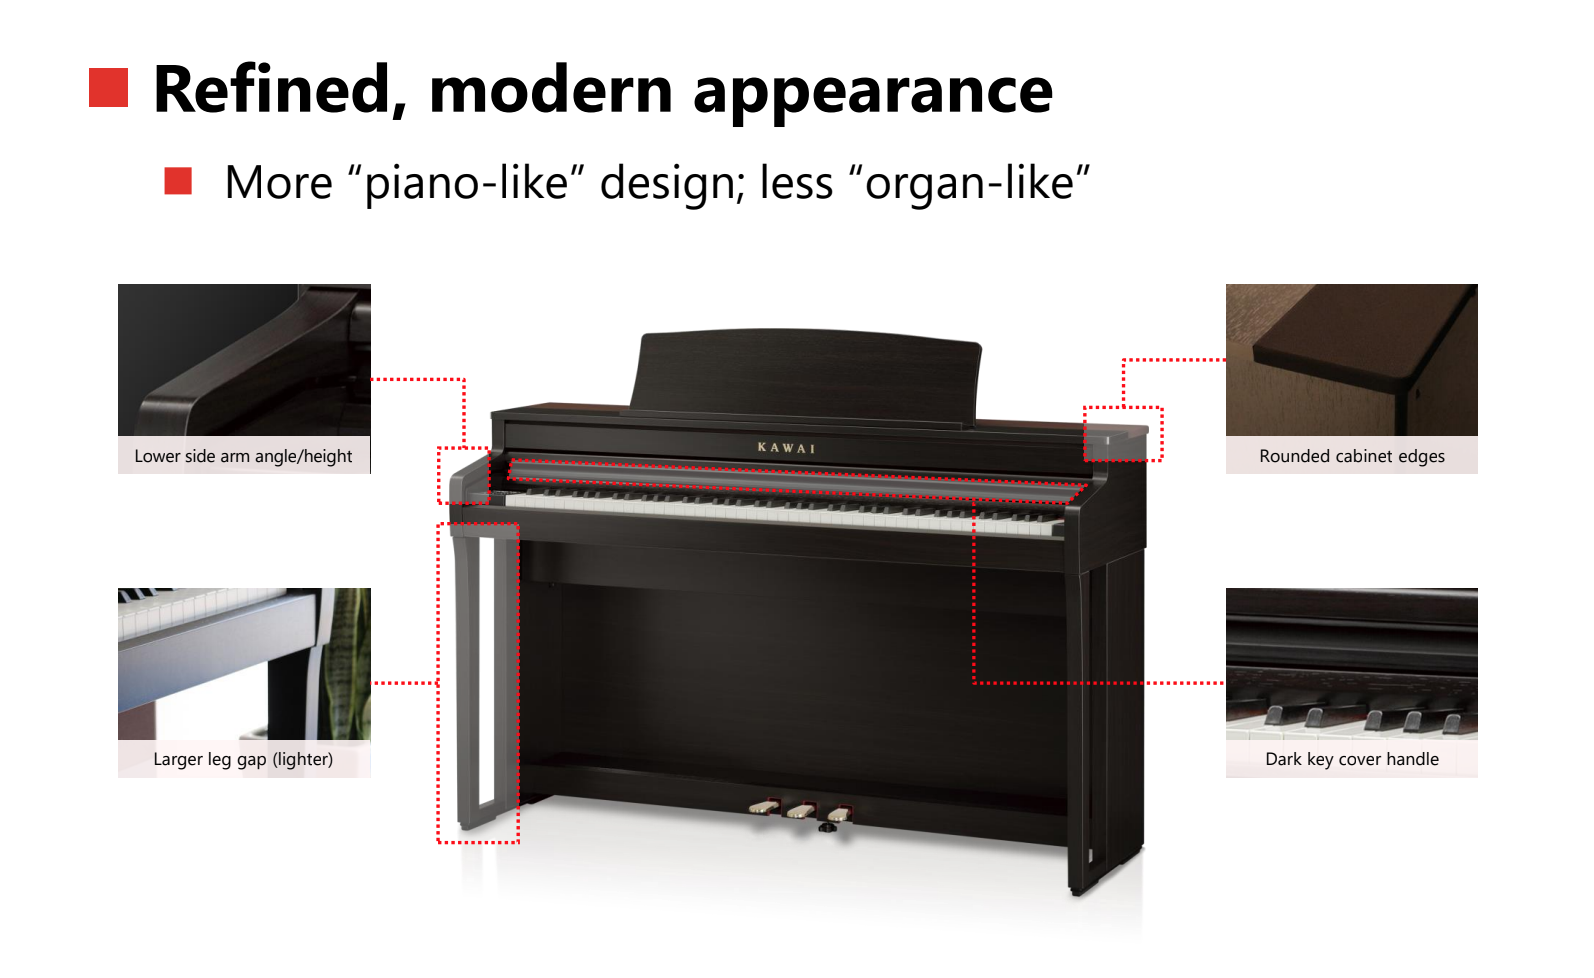 New Kawai CA49 and CA59 digital pianos sound and play less like an organ, thanks to premium wooden cabinets